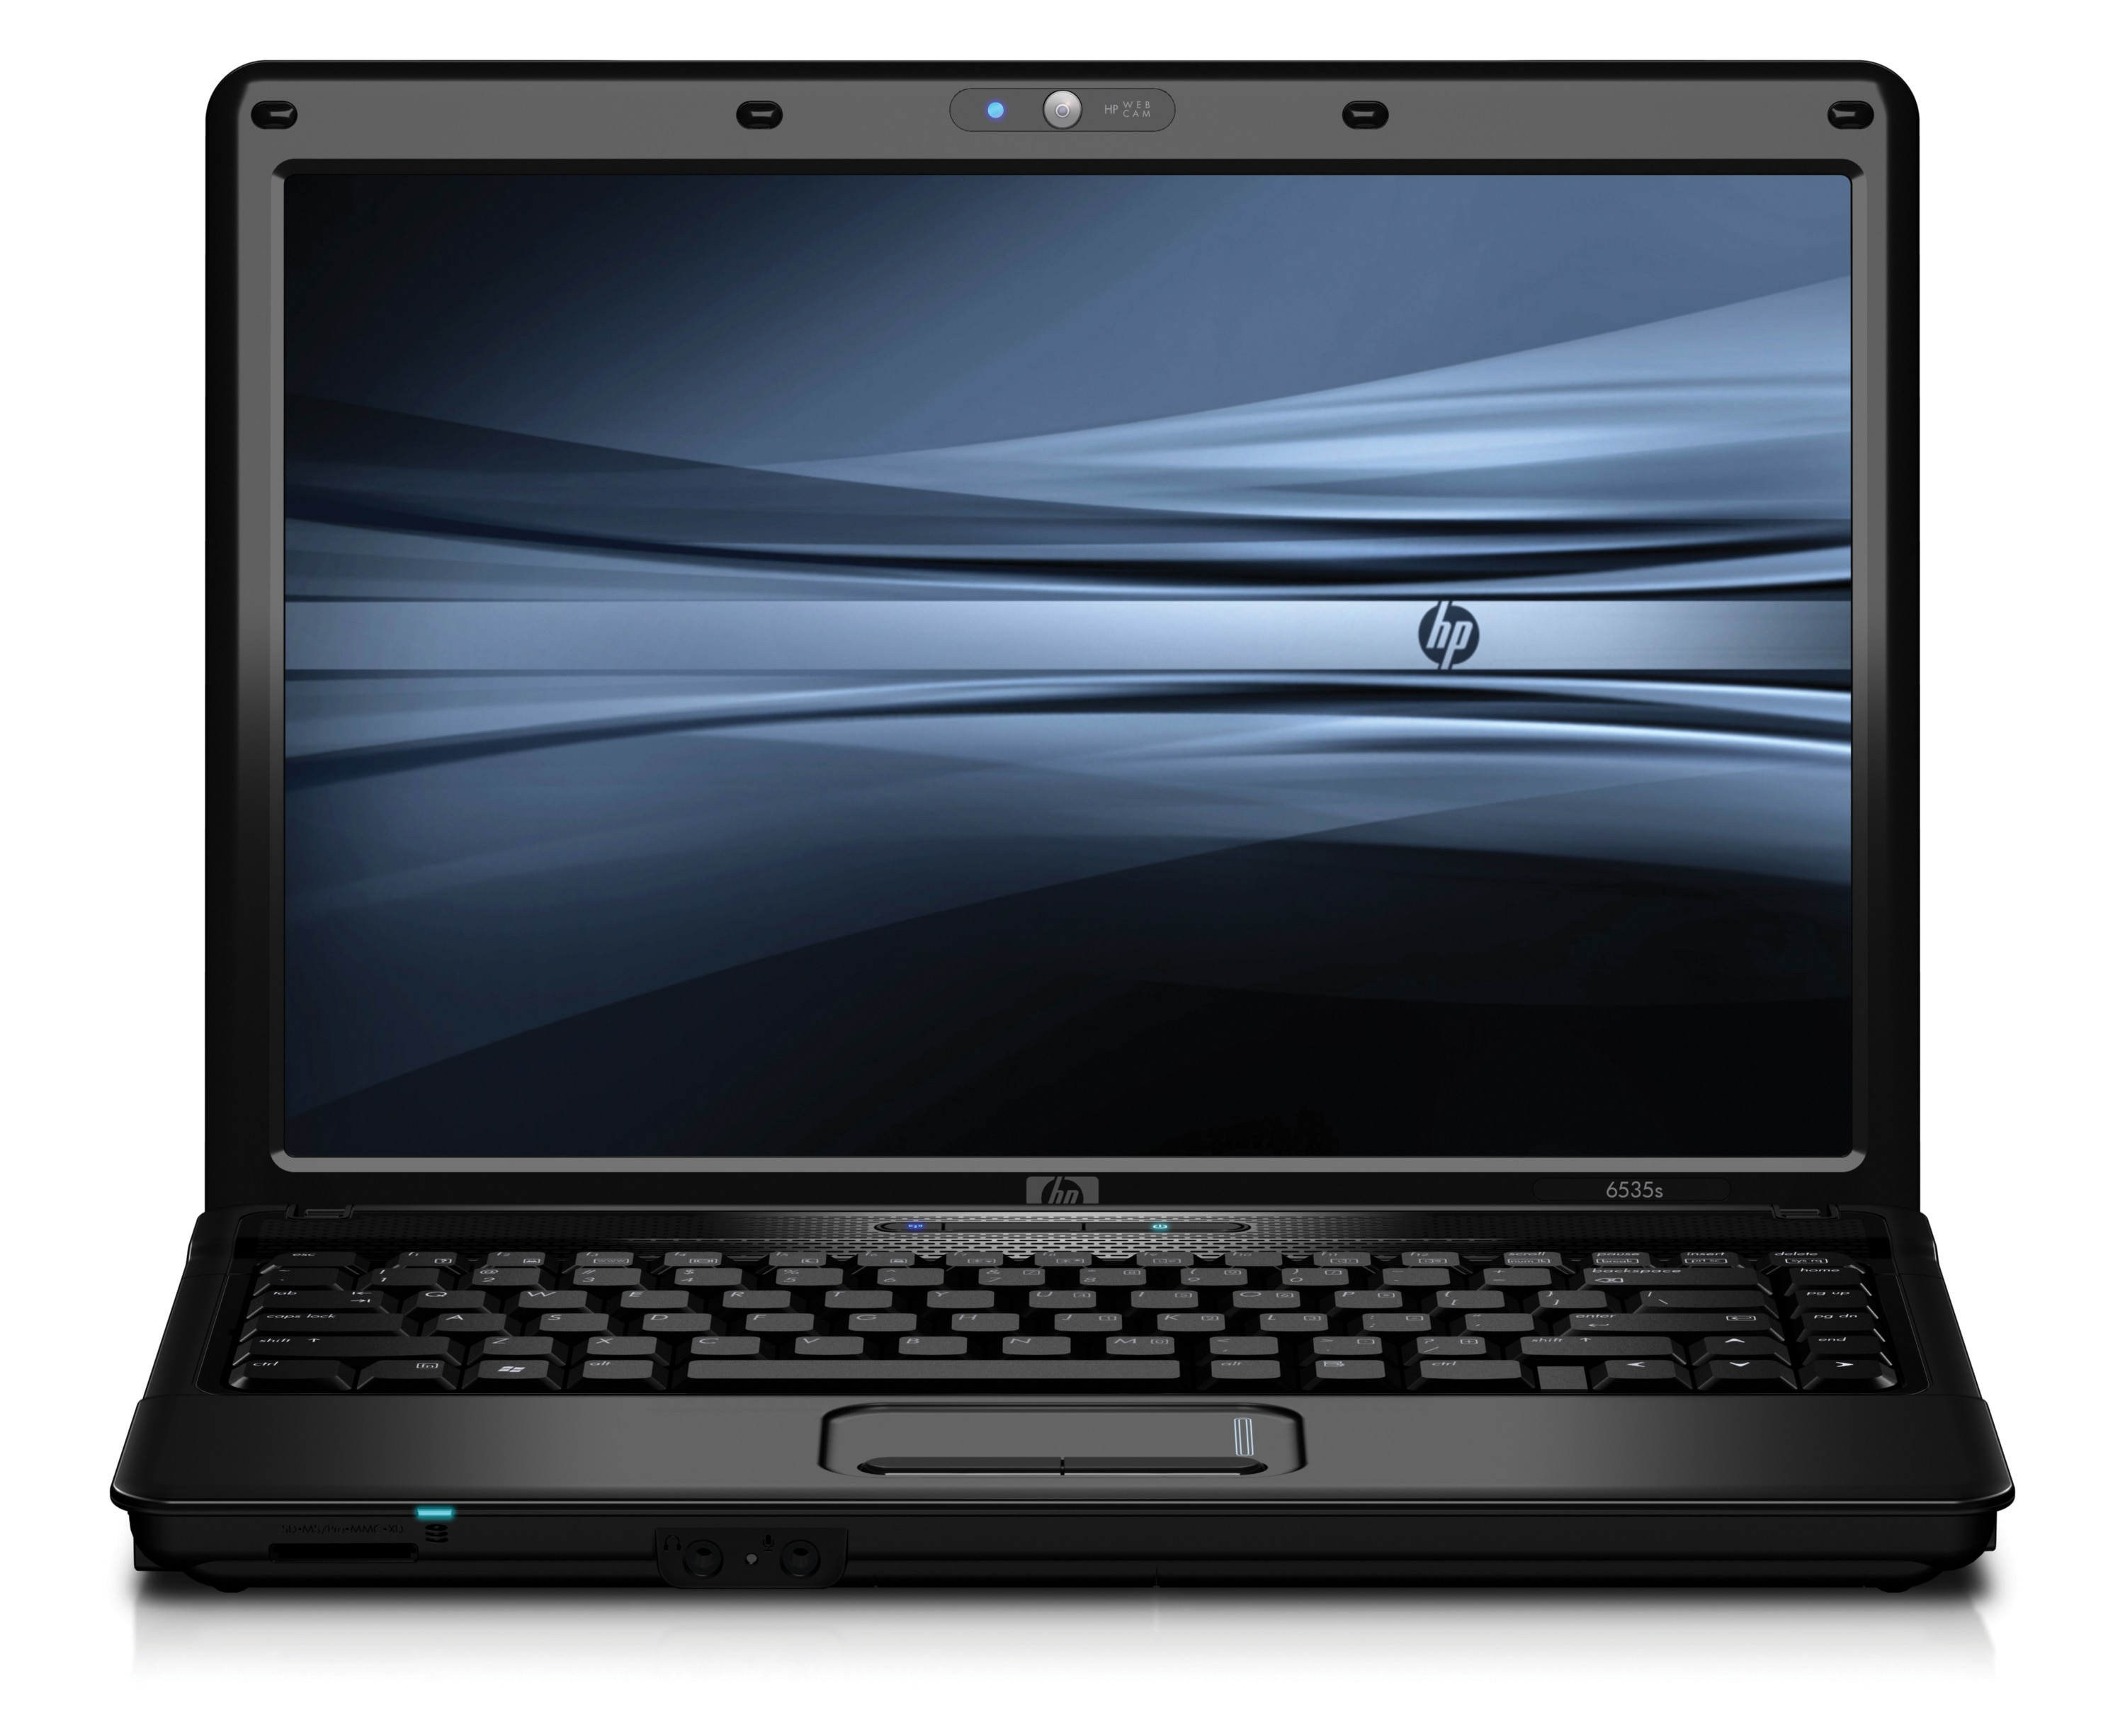 Hp laptop administrator password